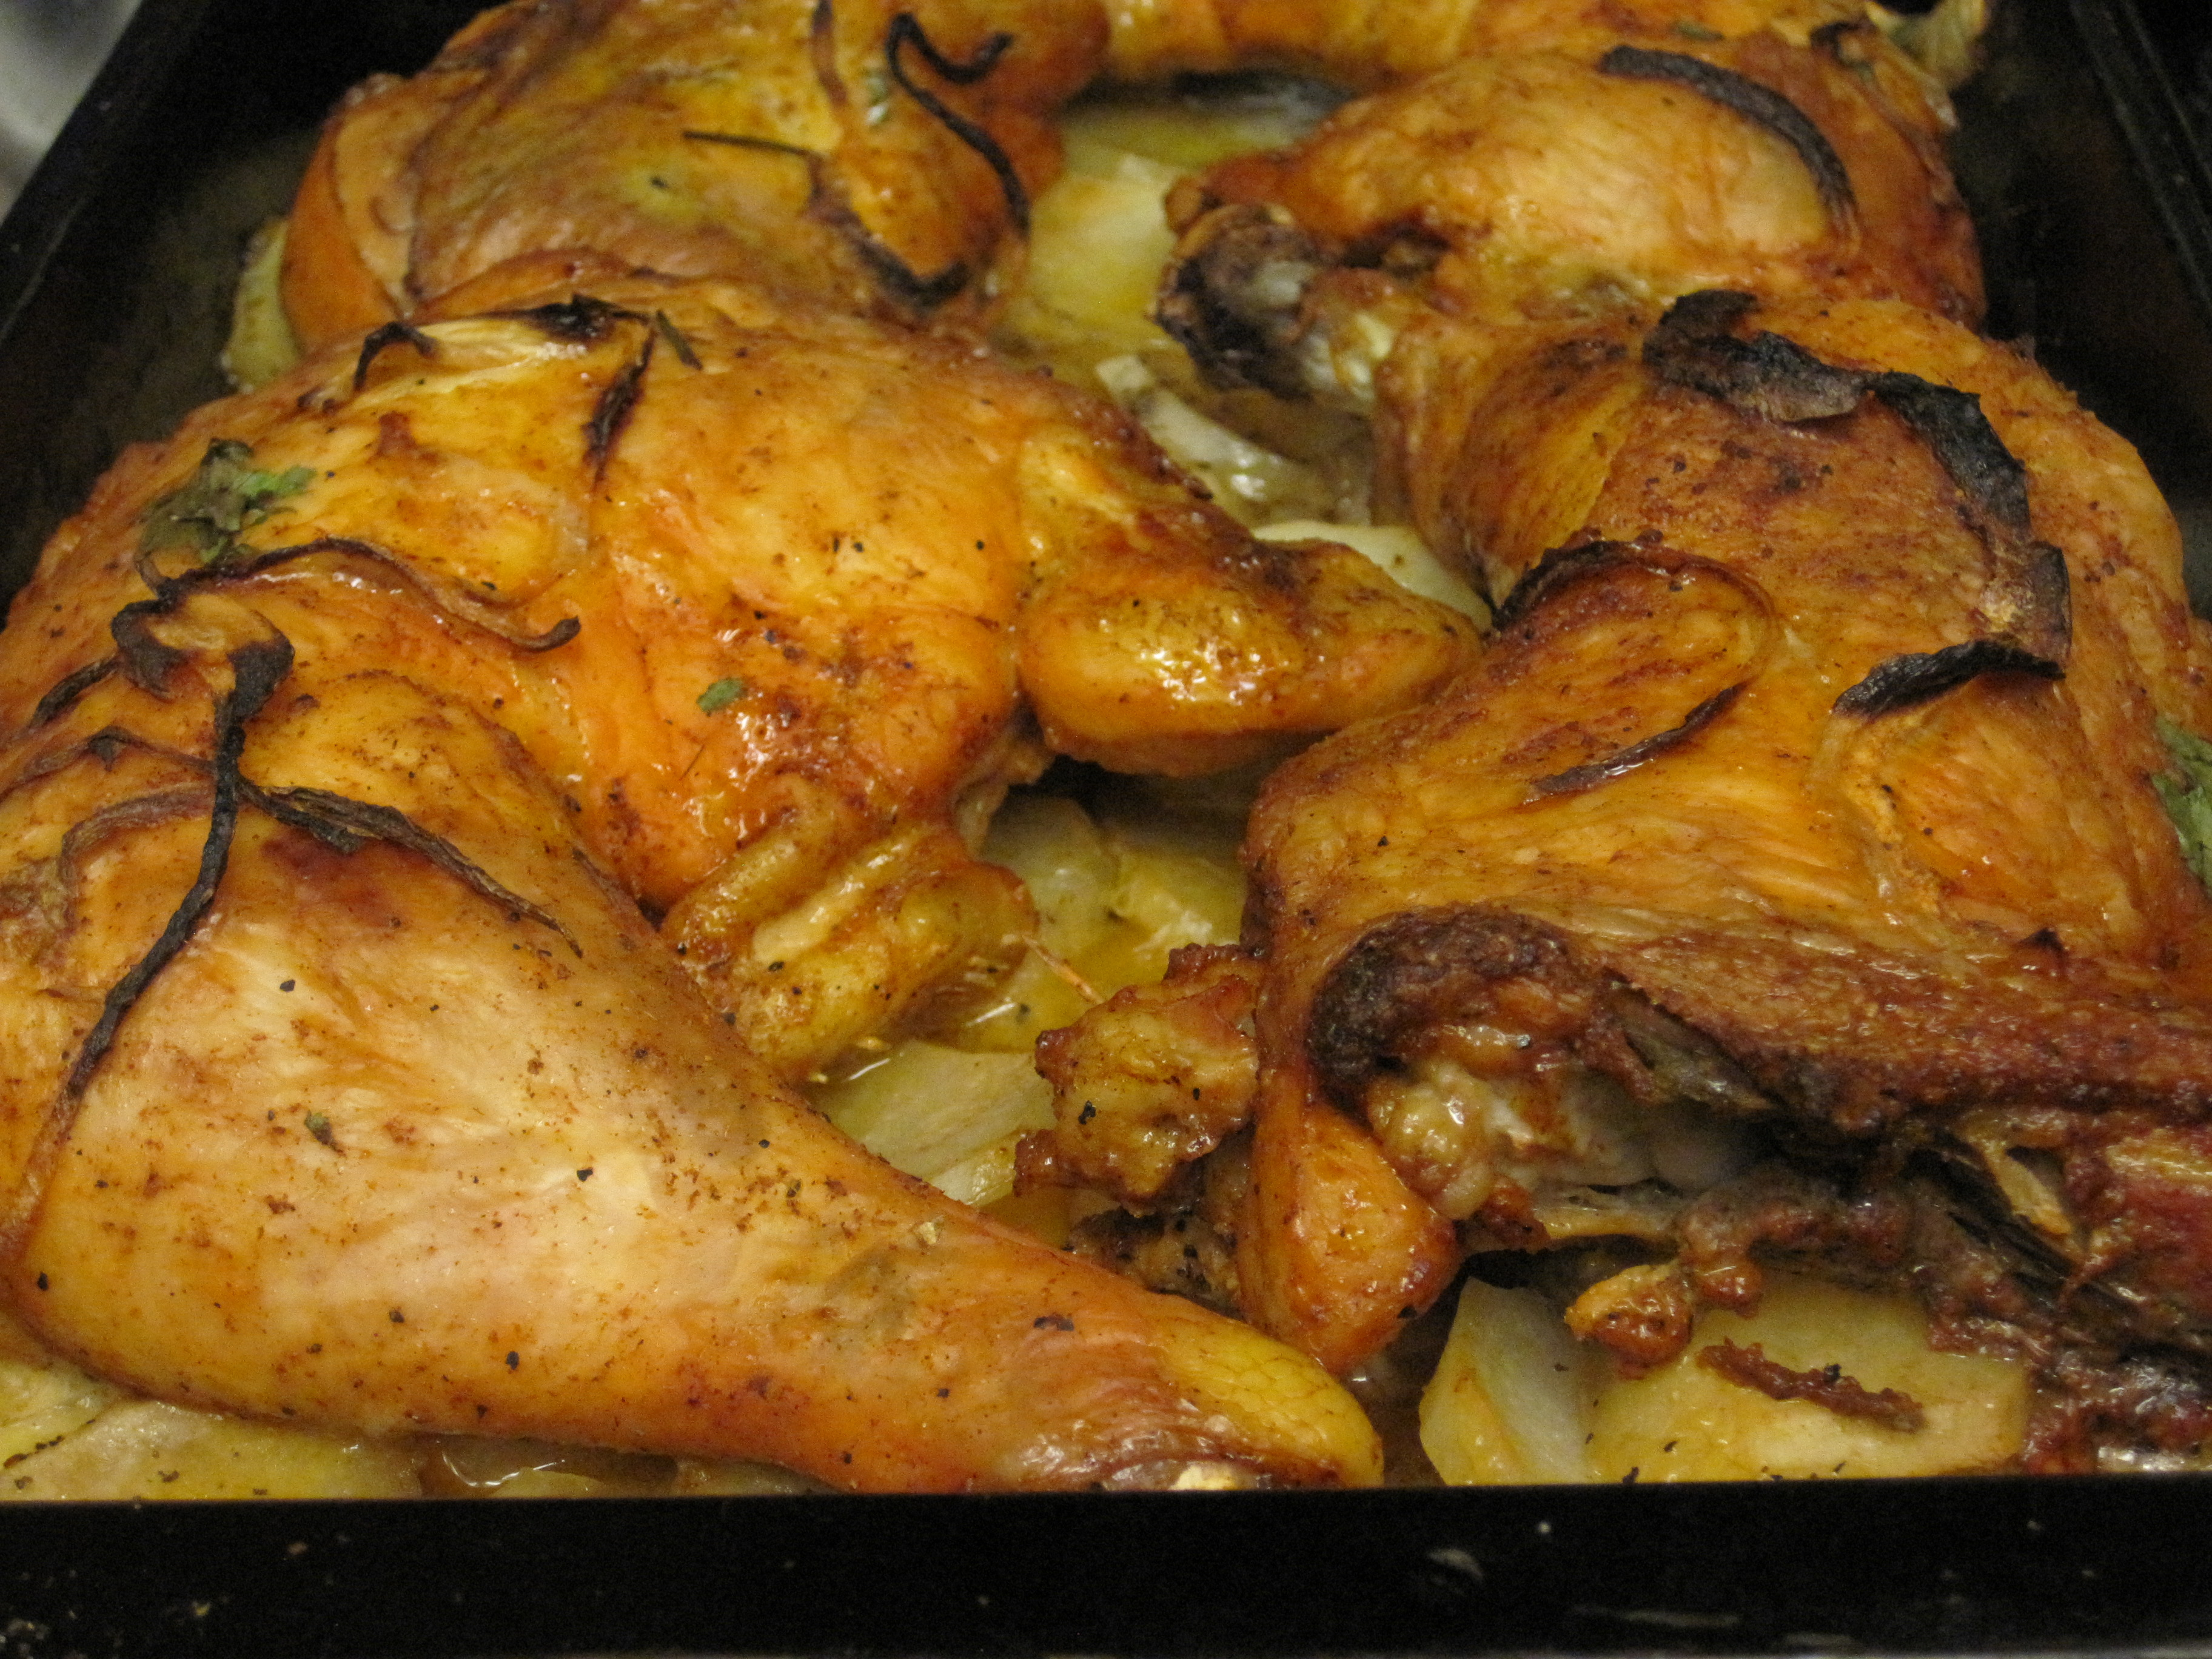 Baked Chicken Recipes Thighs And Legs